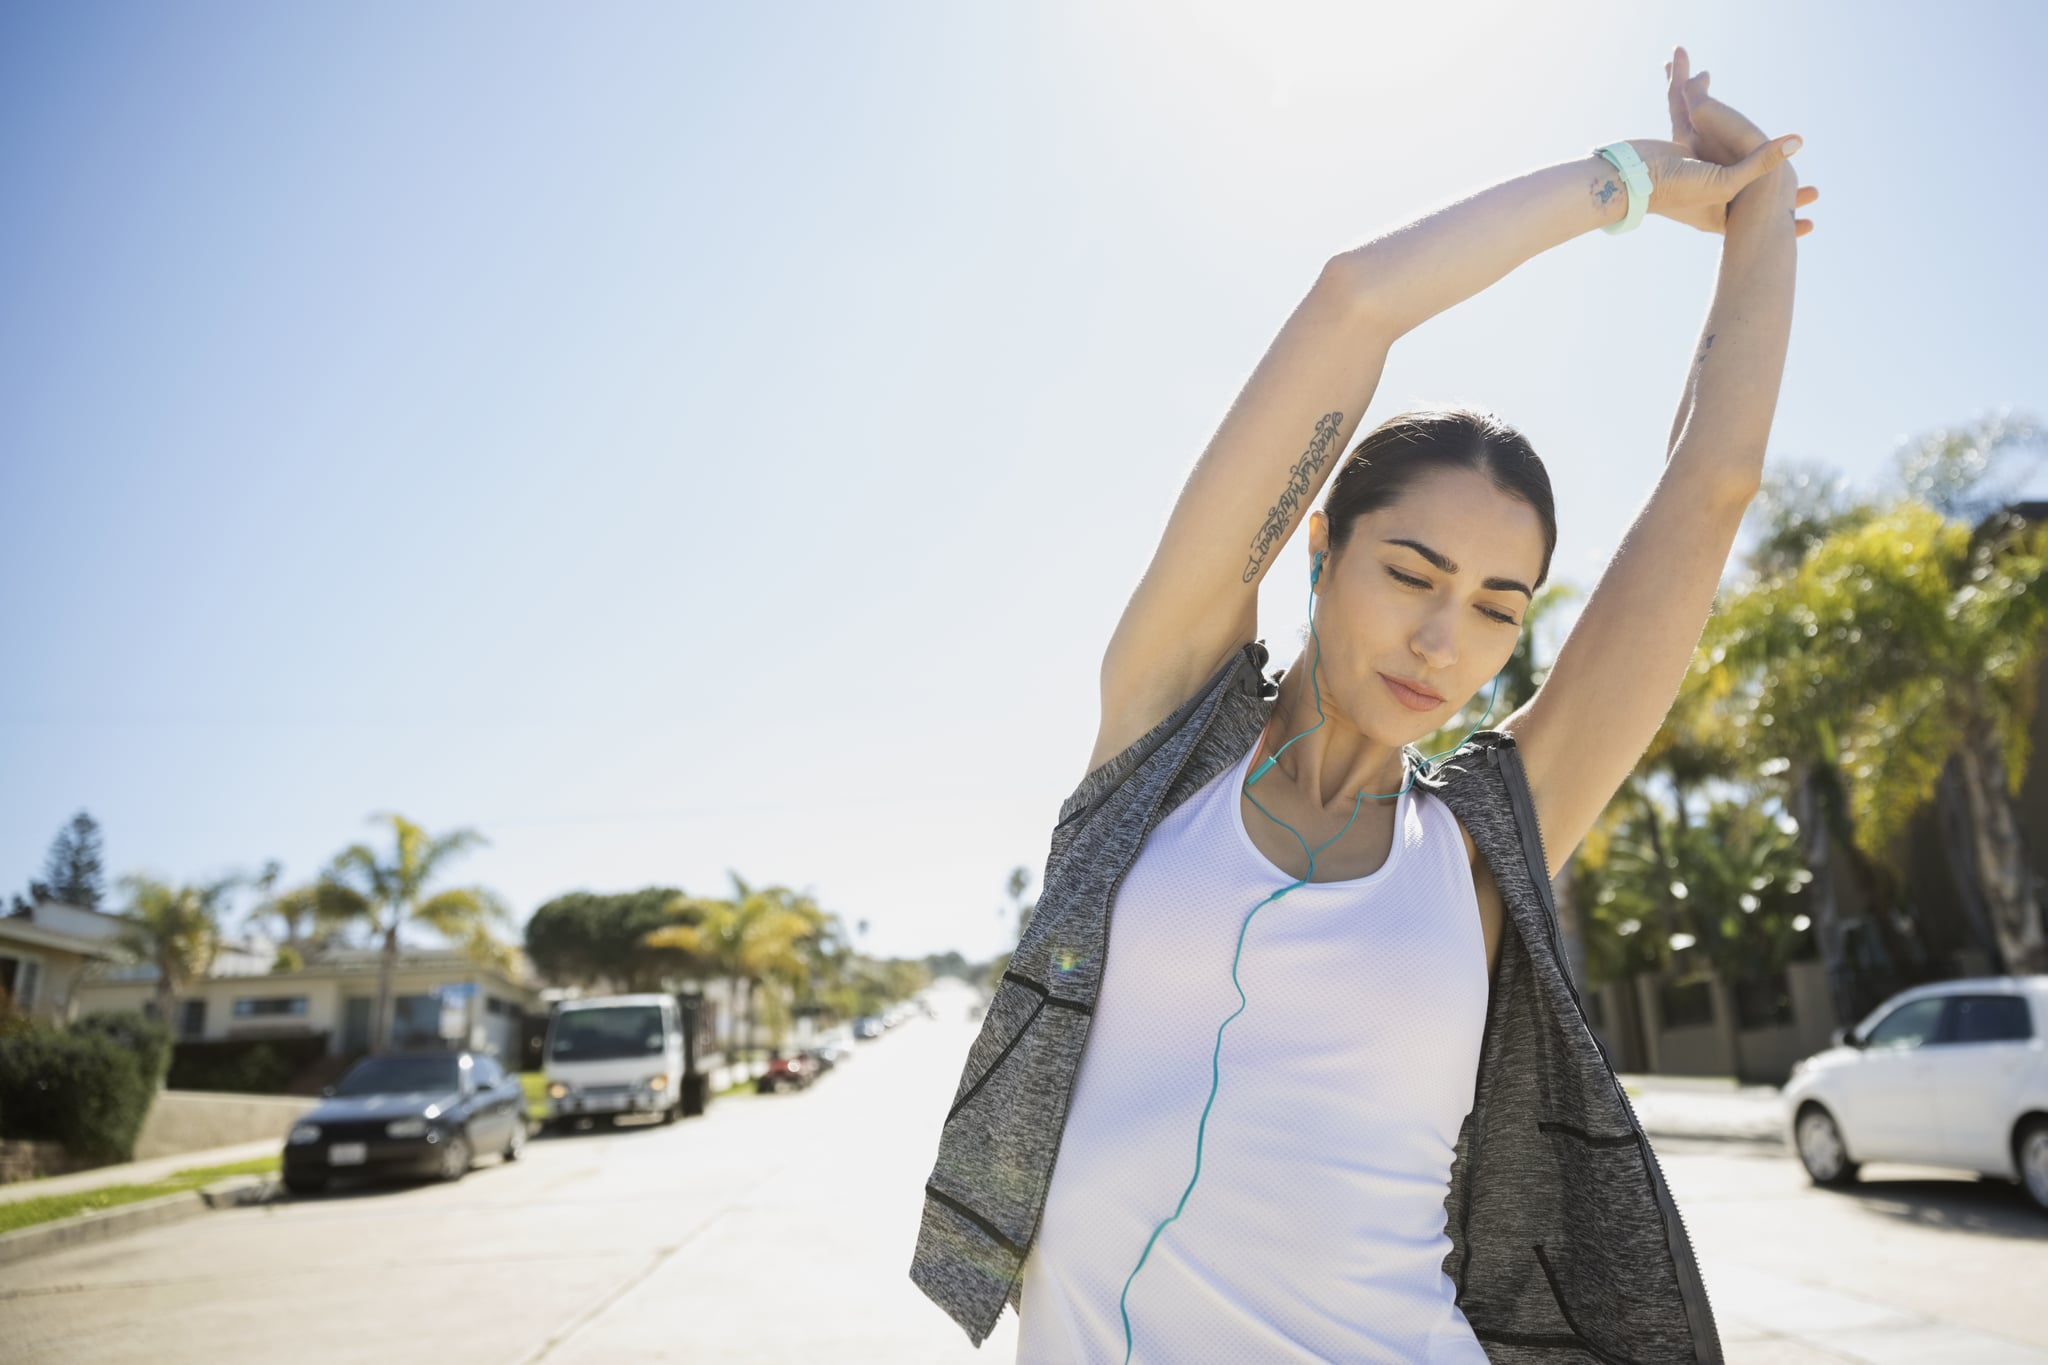 Sore Muscles? Here Are Some Home Remedies to Try ASAP